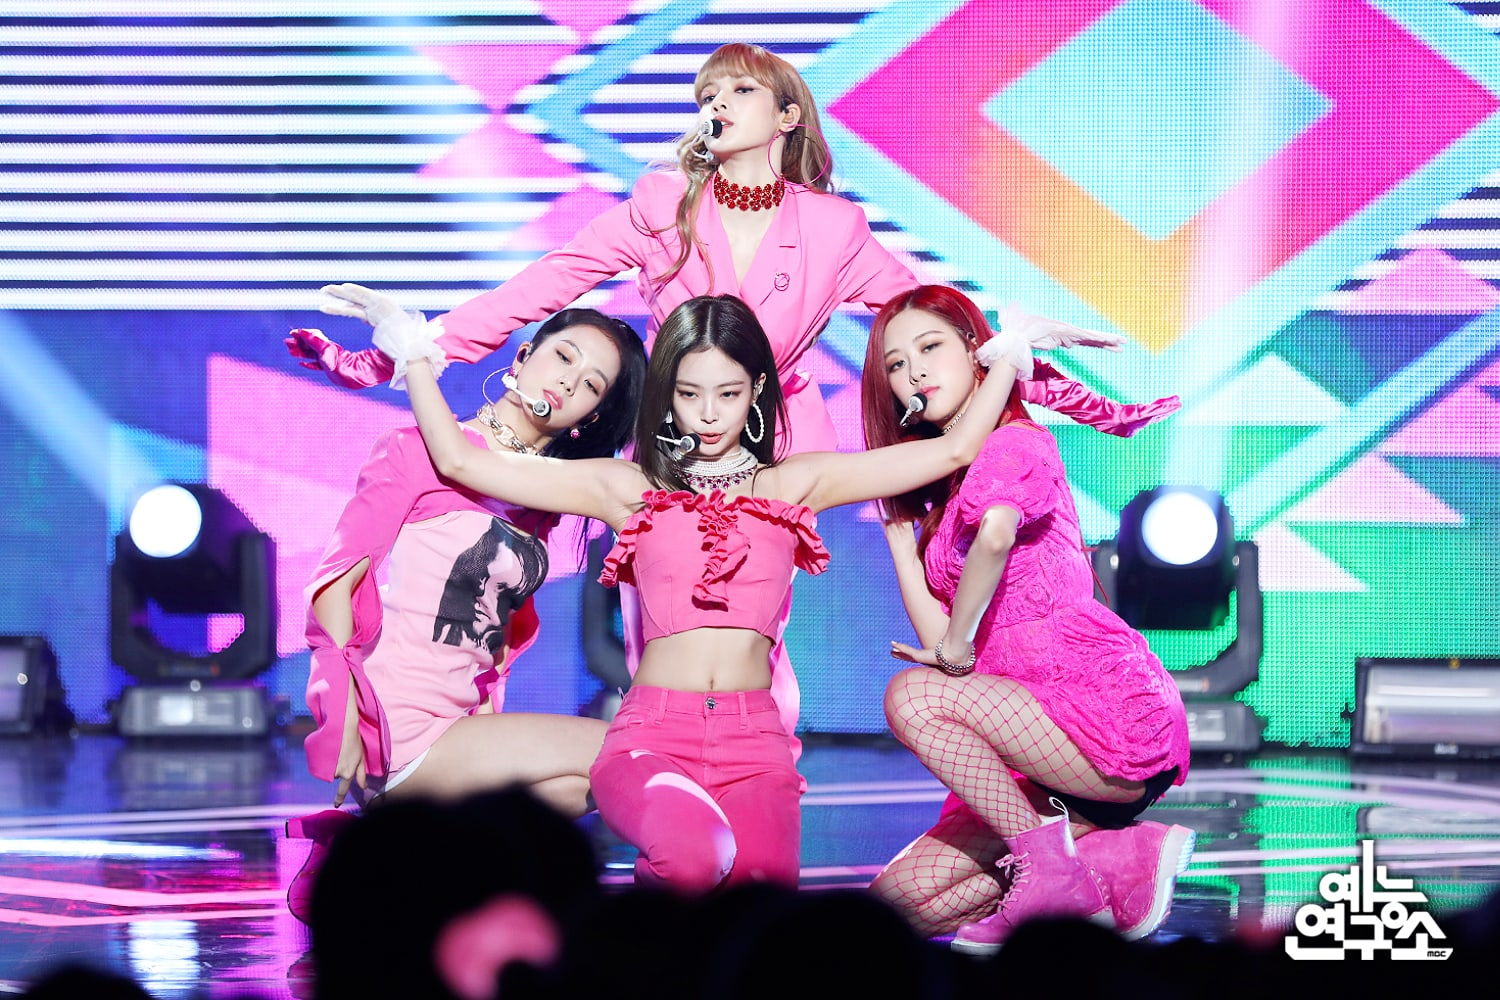 Cute Together Forever Wallpaper Sizzlin Style 7 Of Blackpink S Latest And Hottest